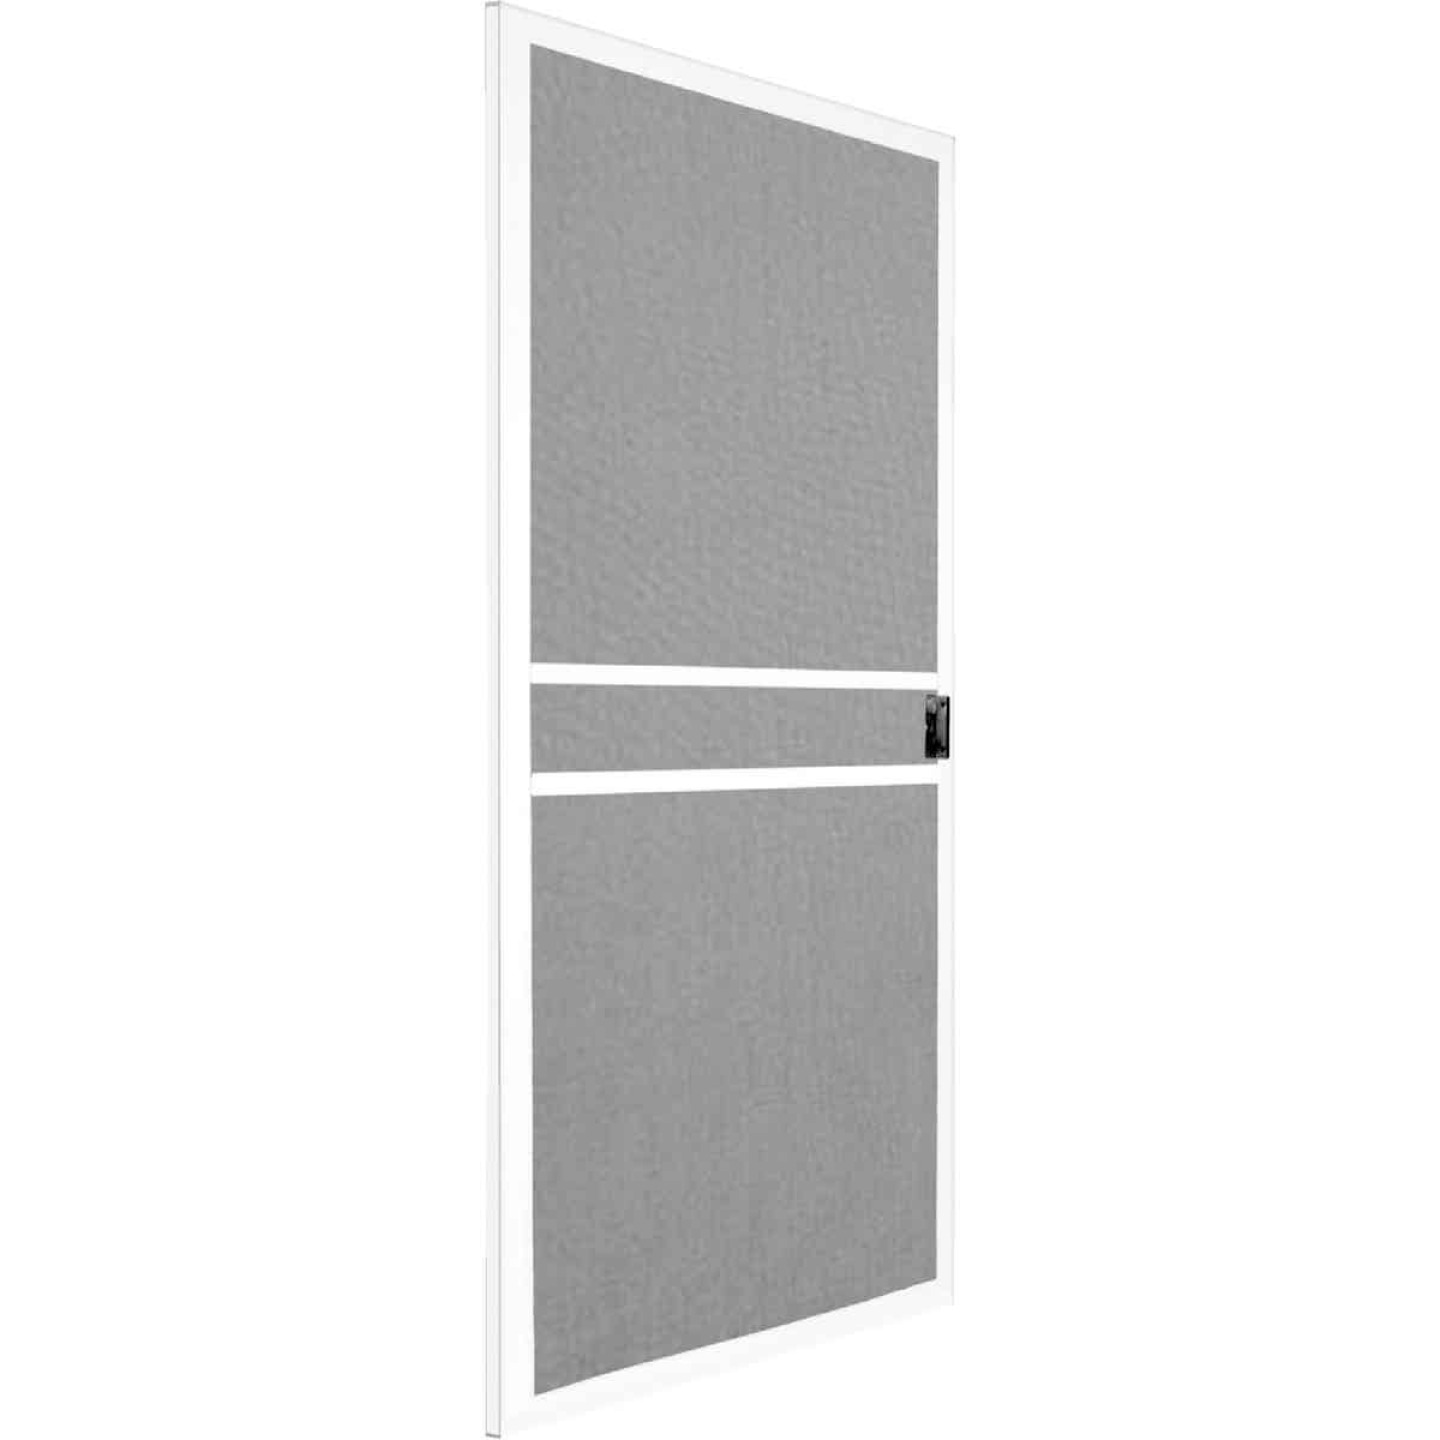 Precision Branson 36 In. White Steel Replacement Patio Door Screen Image 1